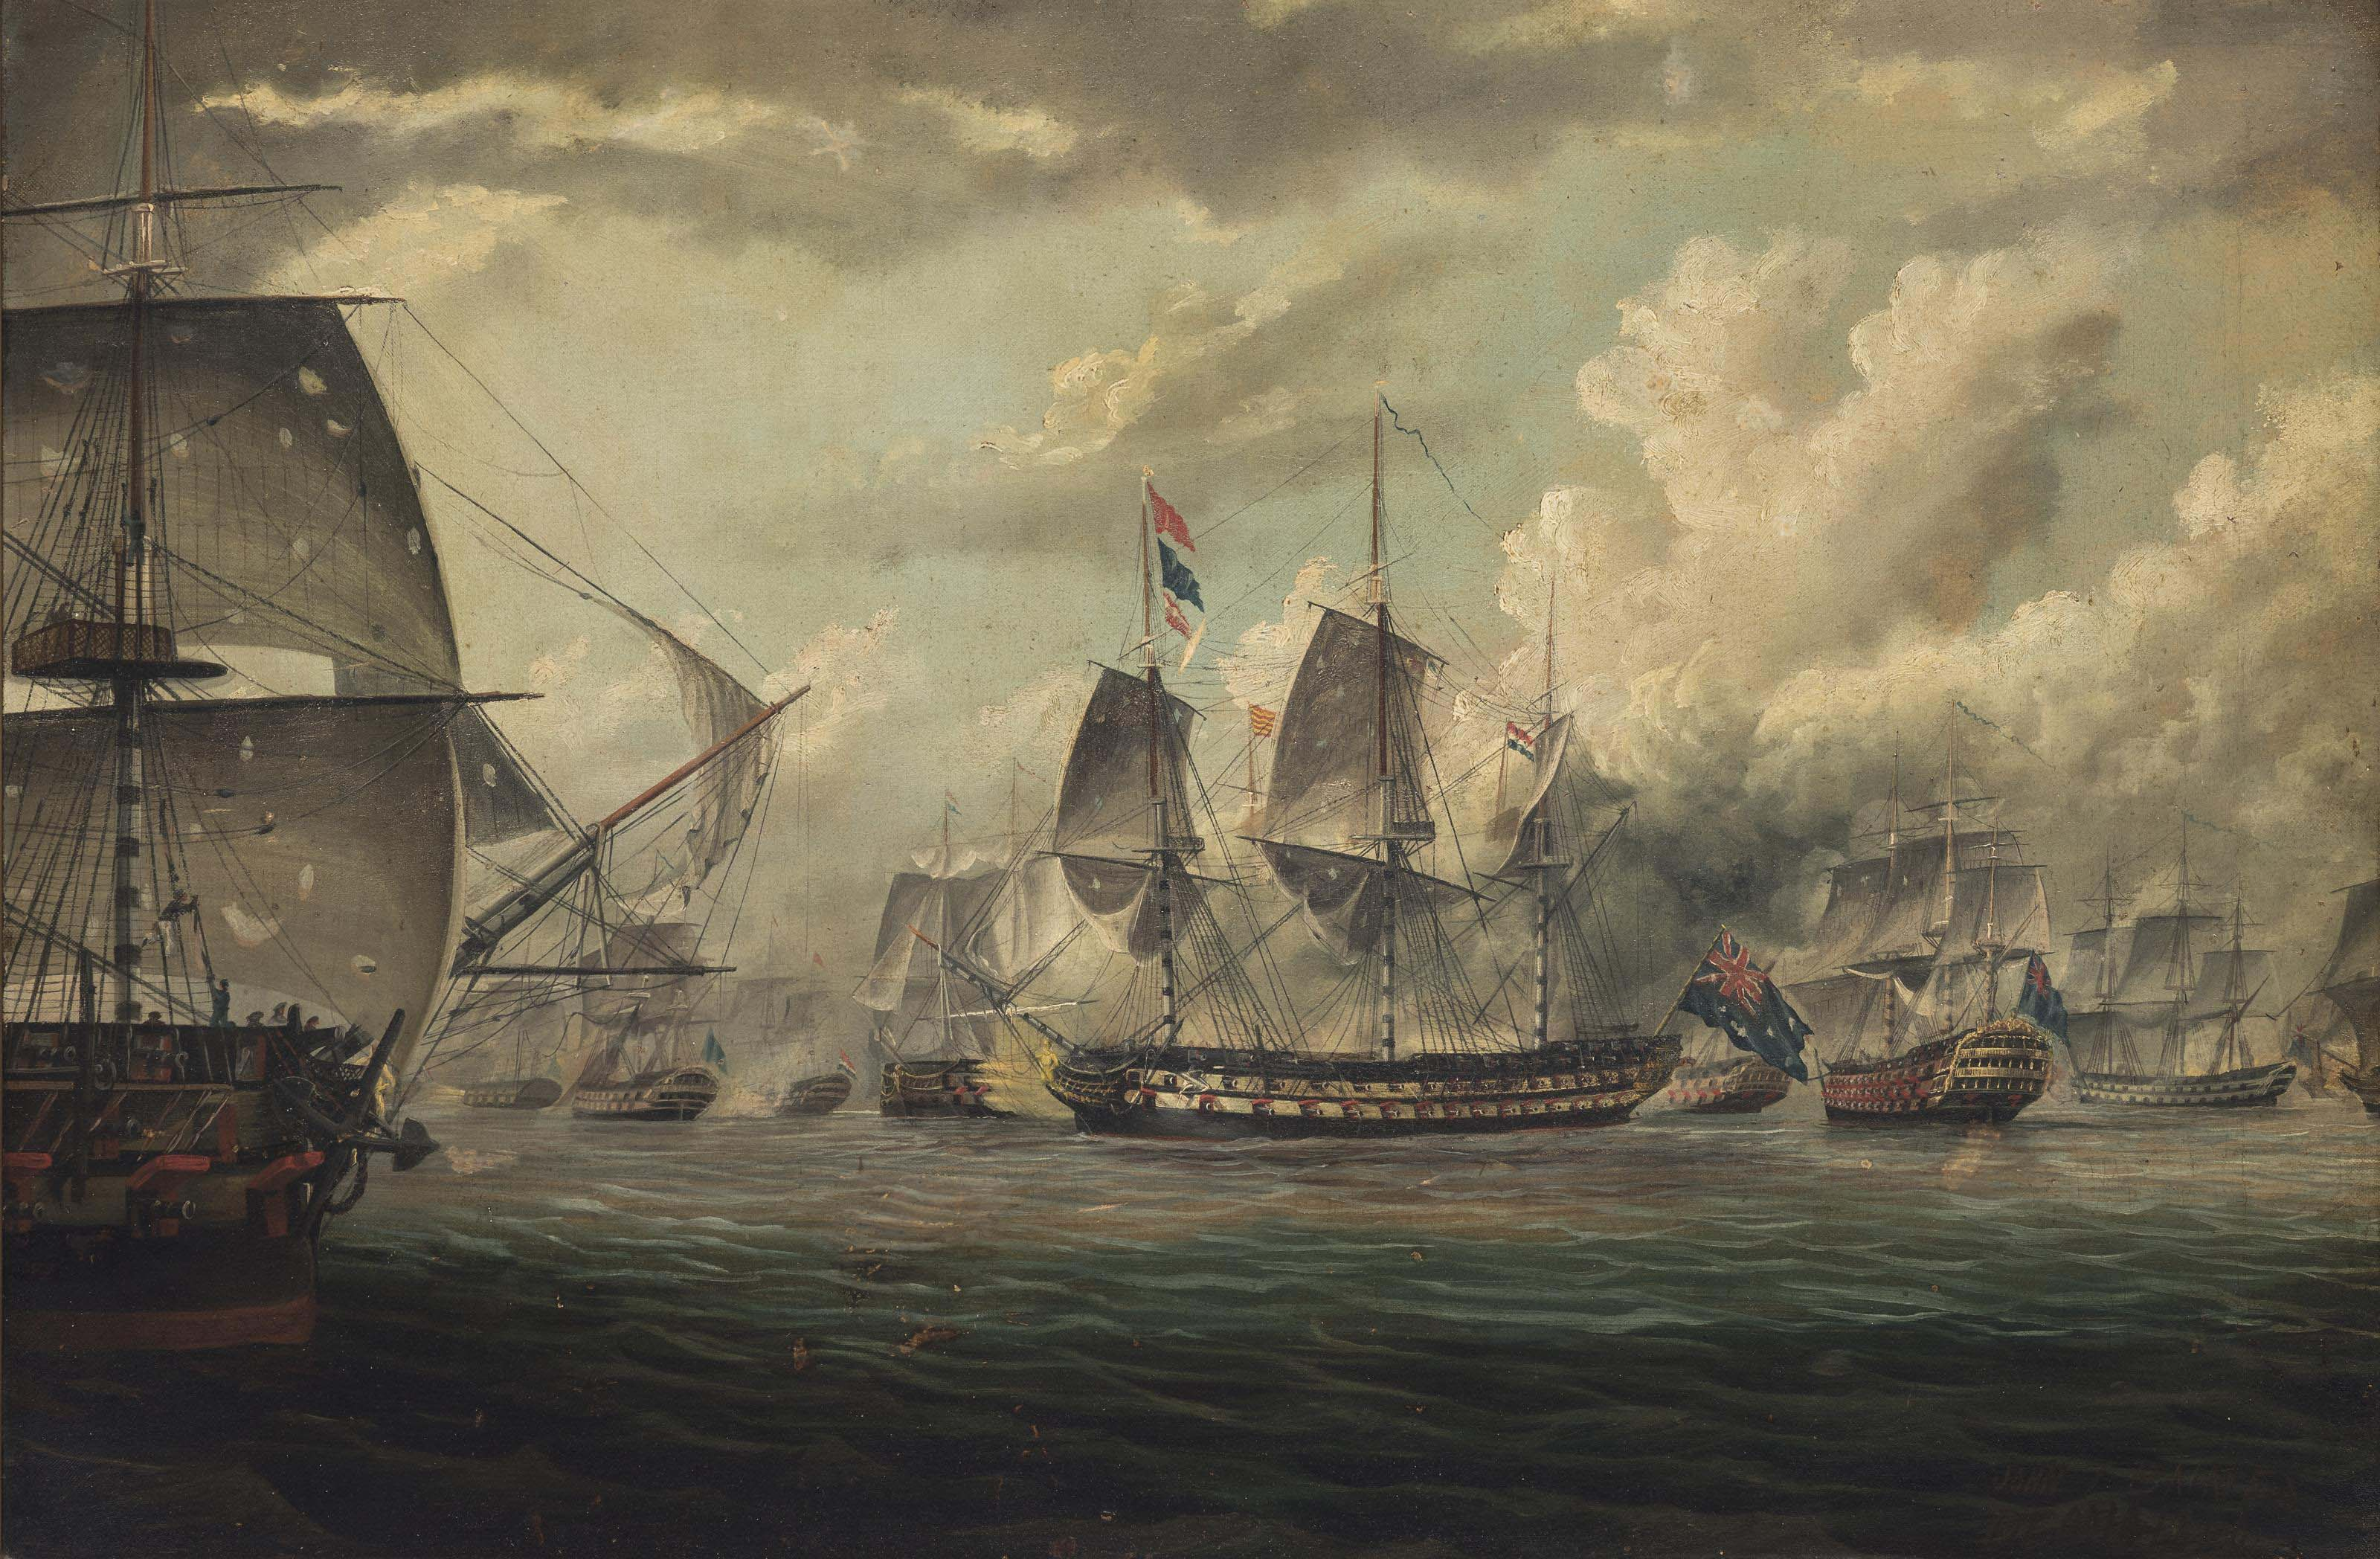 H.M.S. Bellerophon leading the bombardment of the Syrian fortress of Acre on 3 November 1840